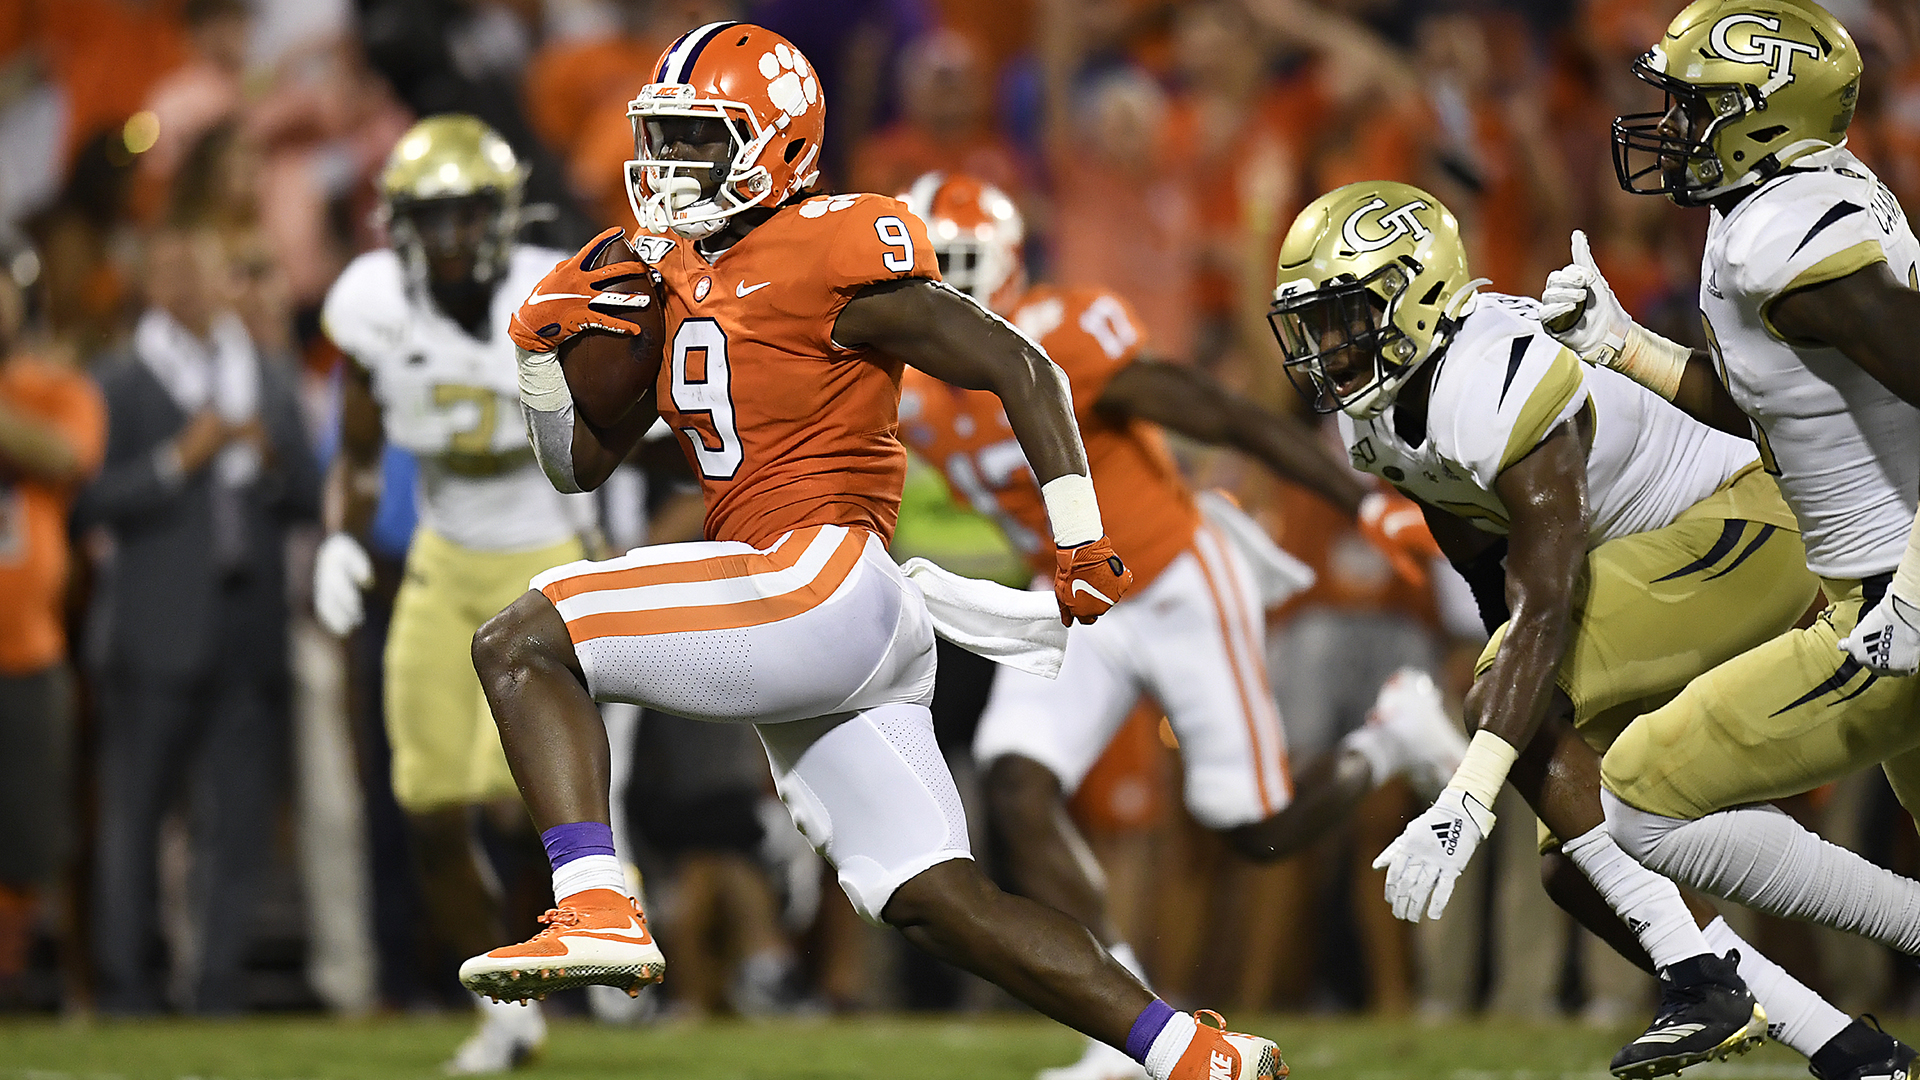 Three takeaways from No. 1 Clemson's drubbing of Georgia Tech